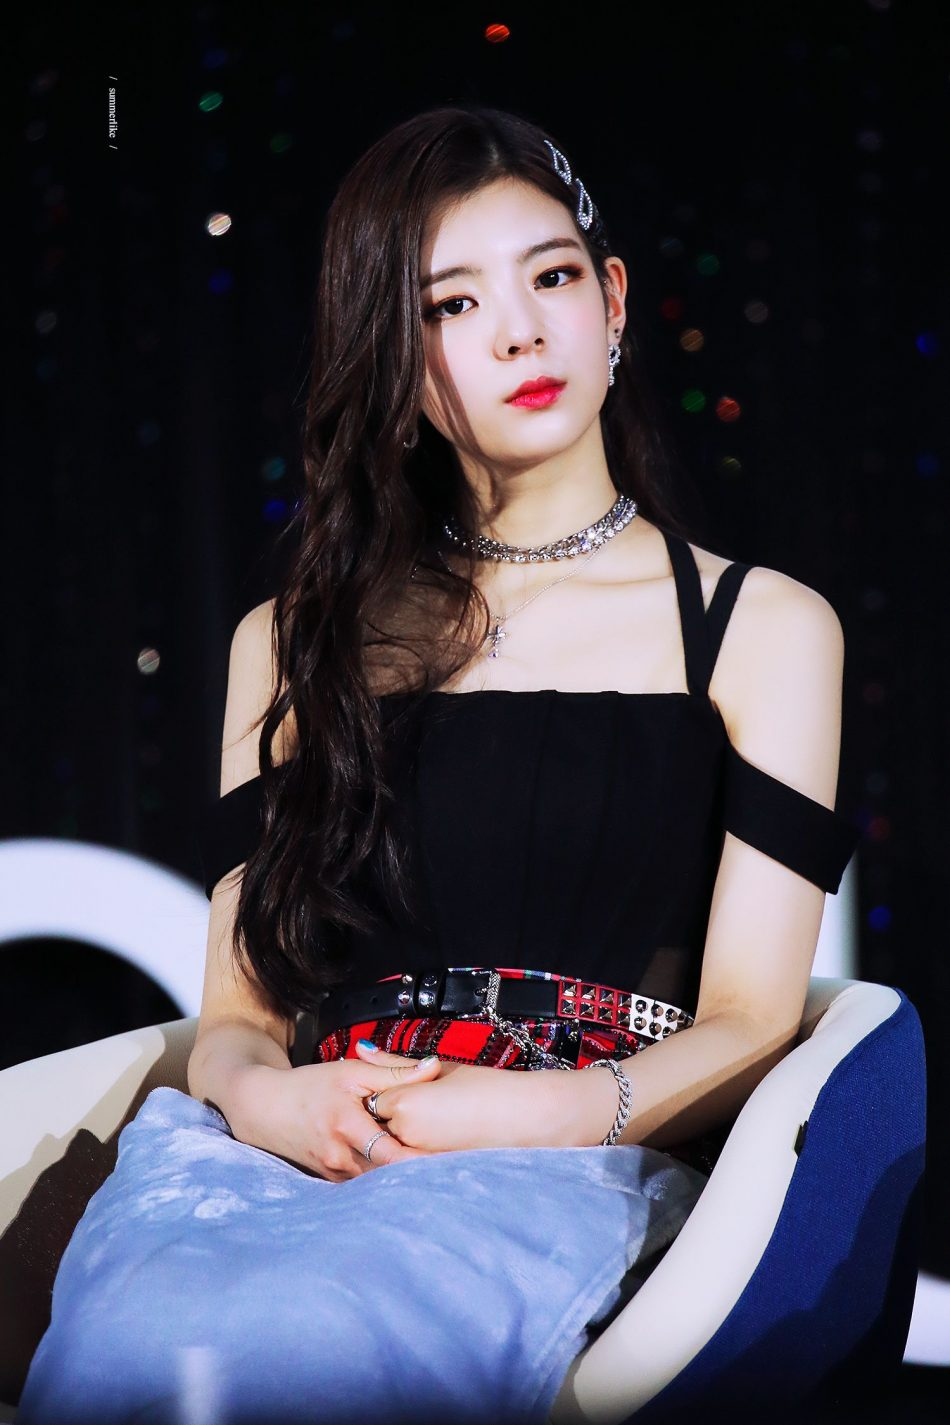 lisa red lips